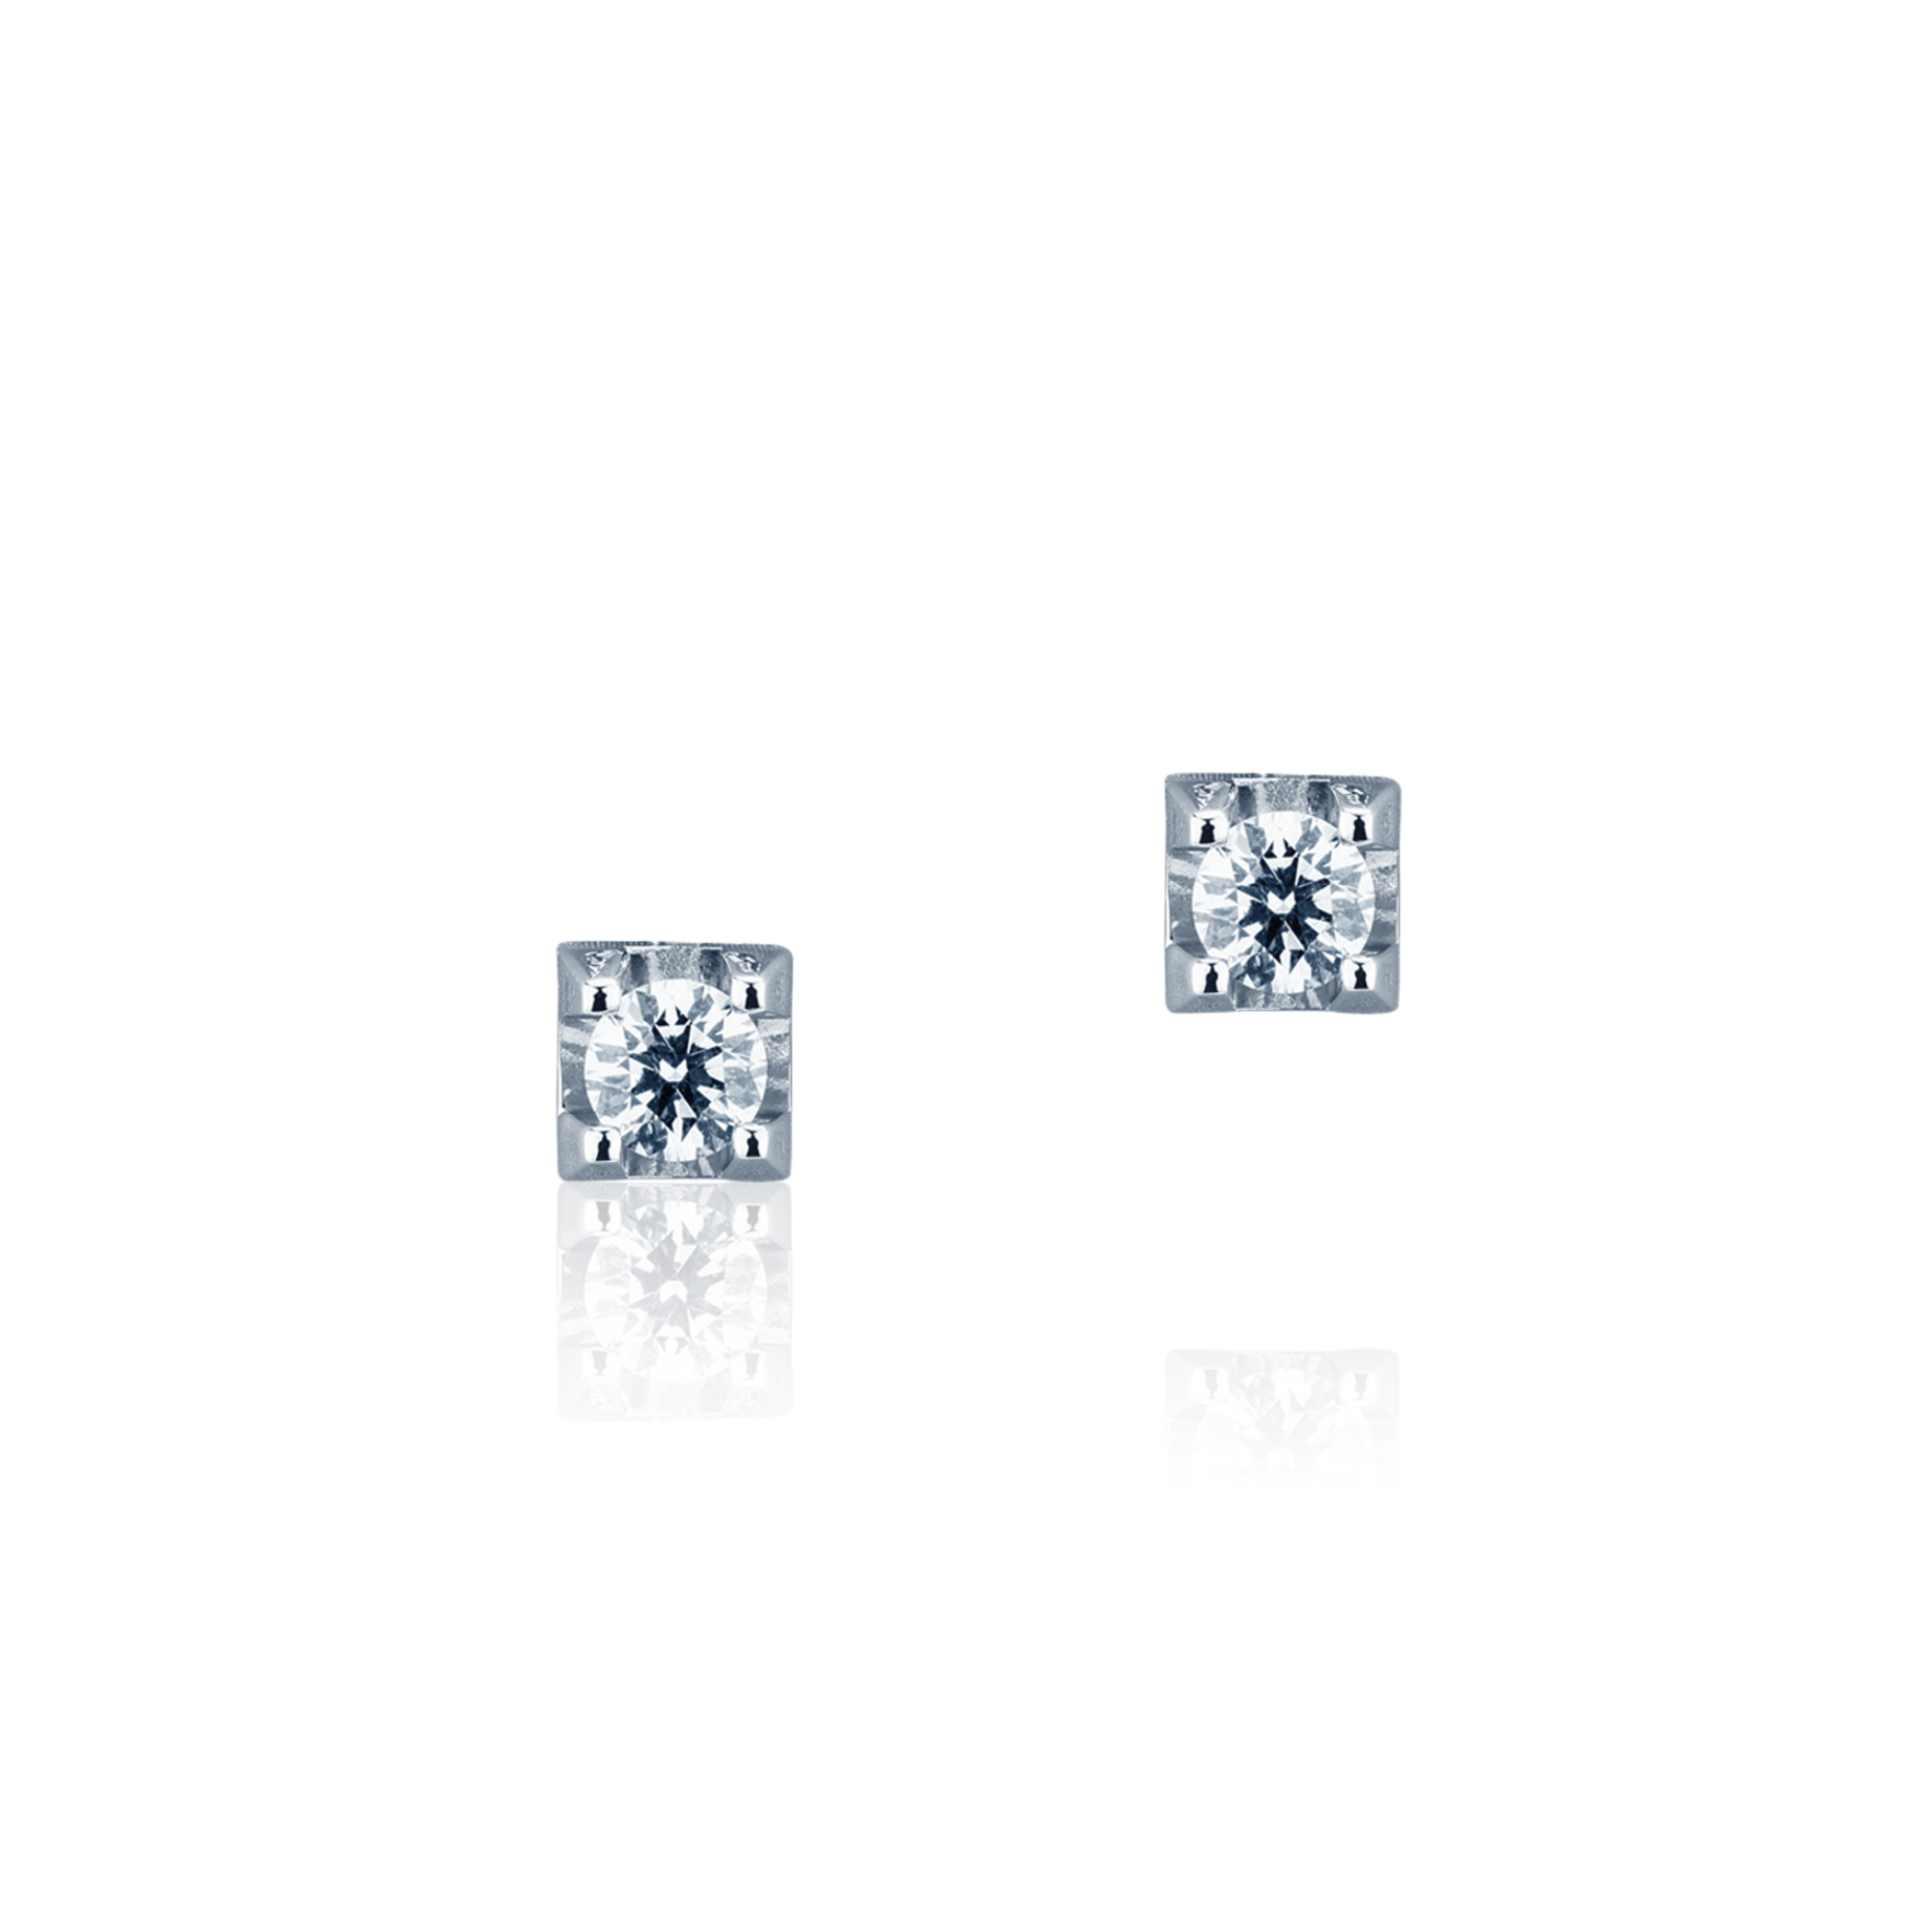 Mirco Visconti Earrings - BN4/80